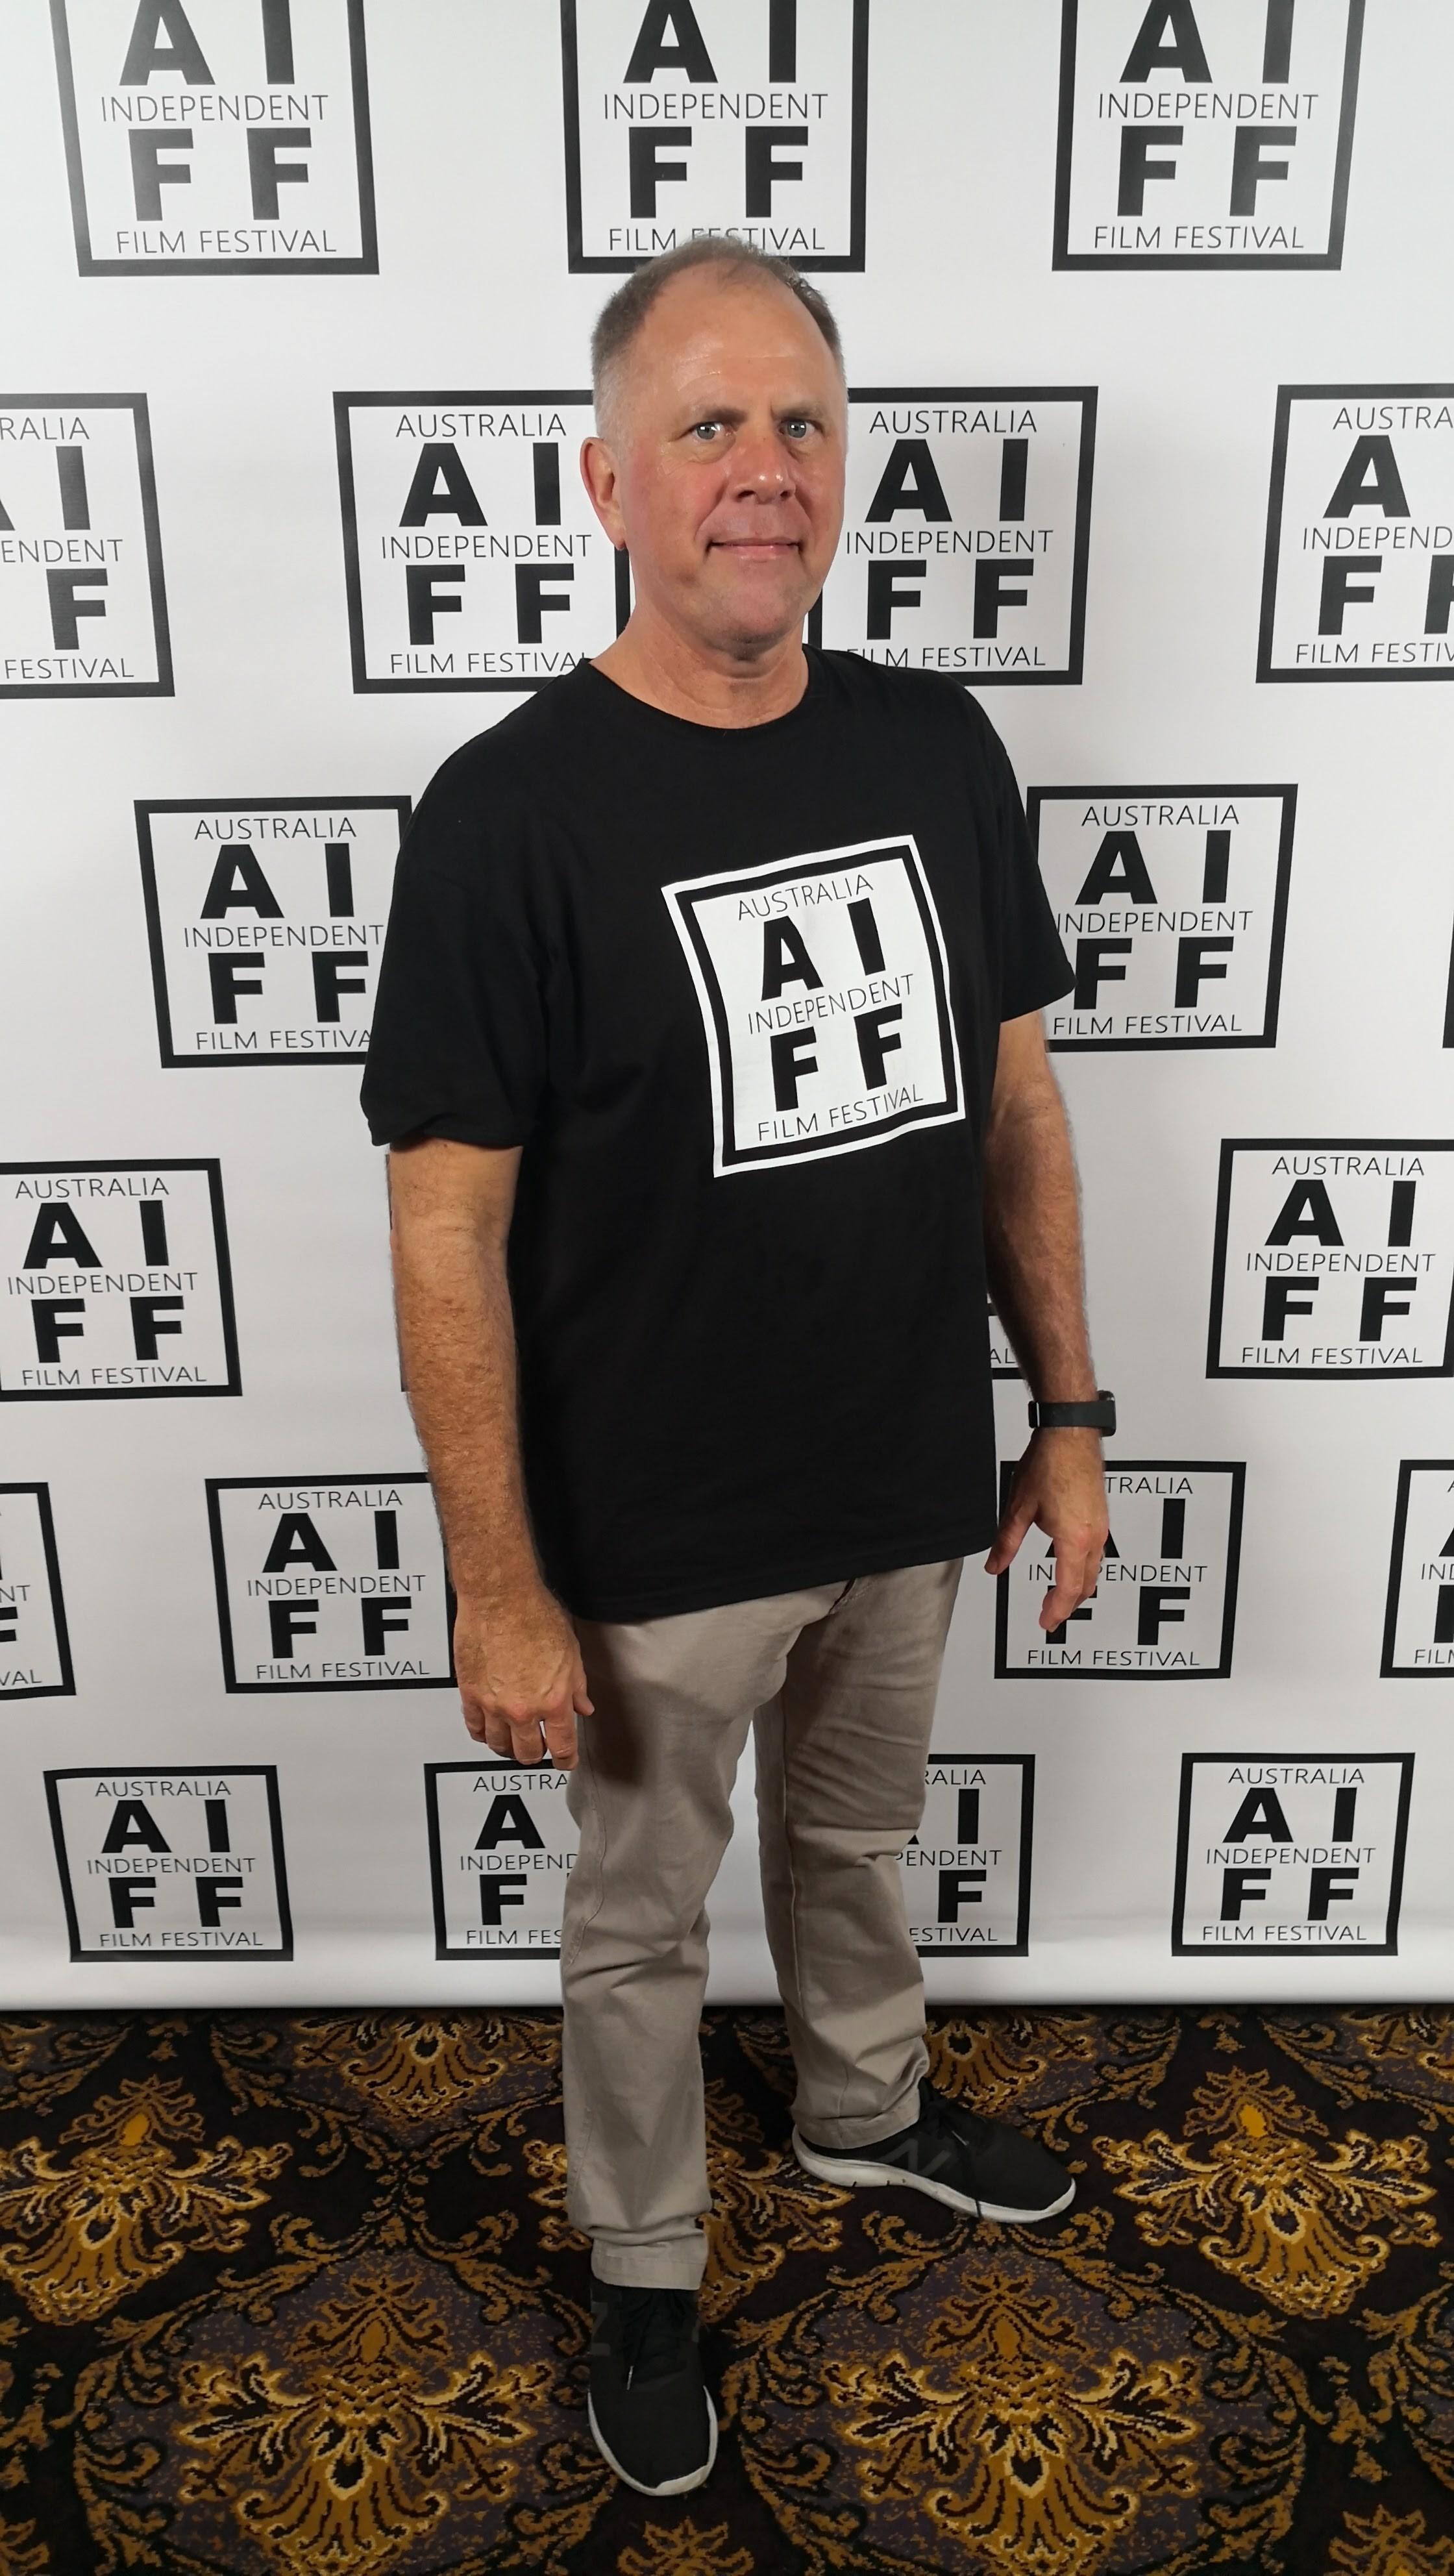 Jeremy Rigby - Co-Director Australia Independent Film Festival